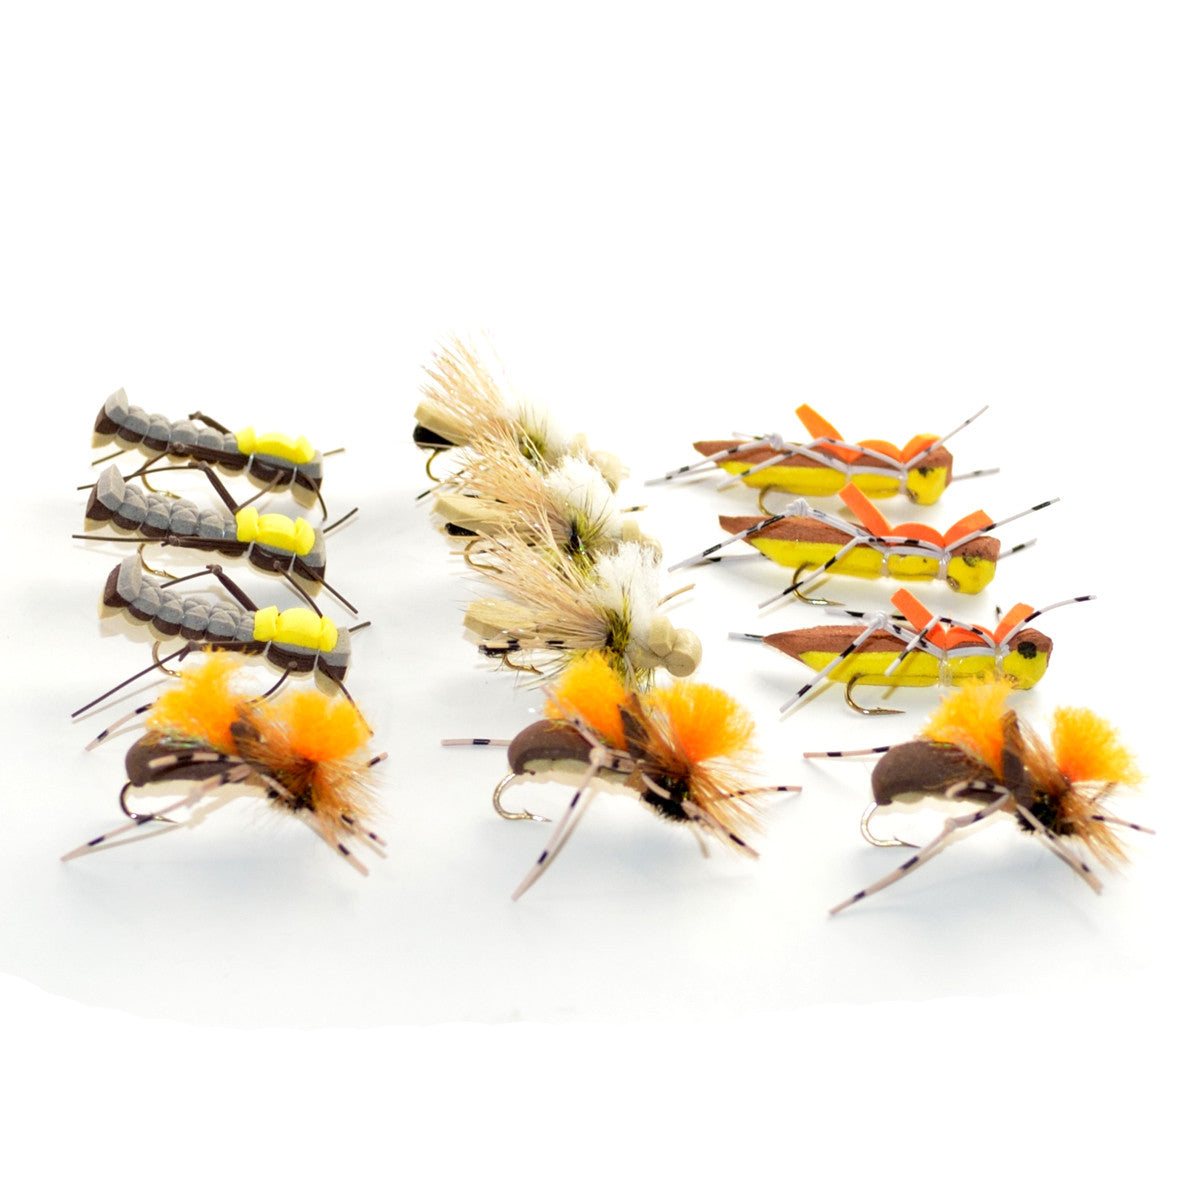 Trout Fly Assortment - Dropper Hopper Foam Body 12 Flies 4 Patterns Trout Fishing Fly Collection